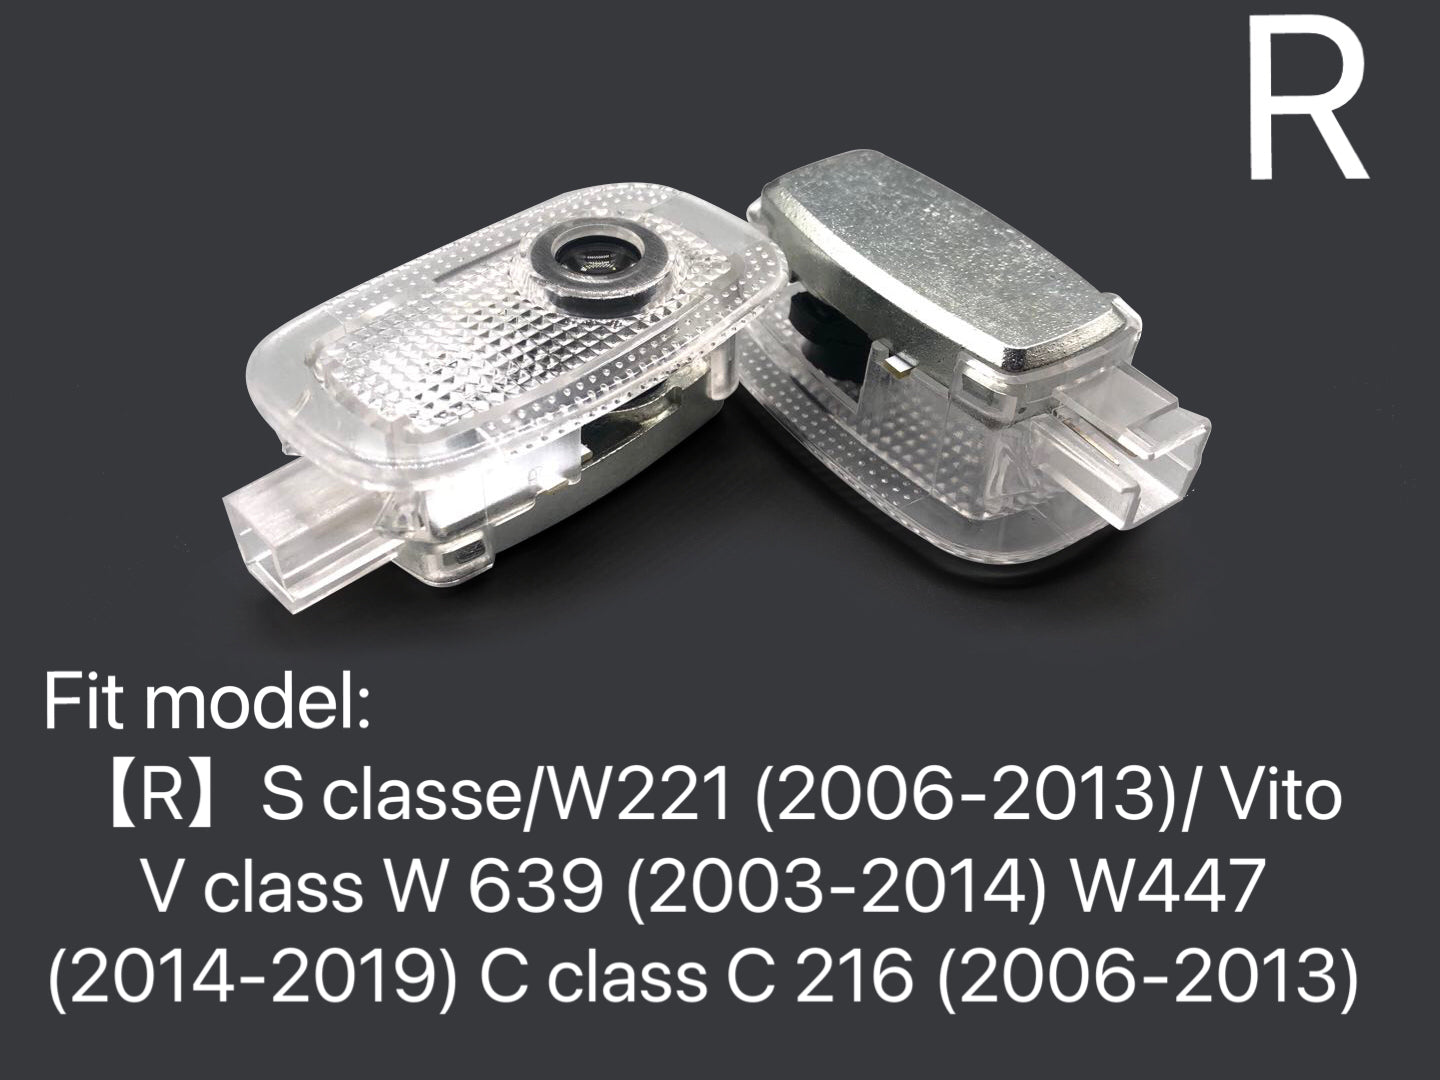 MERCEDES BENZ LOGO PROJECTOT LIGHTS Nr.05 (quantity 1 = 1 sets/2 door lights)